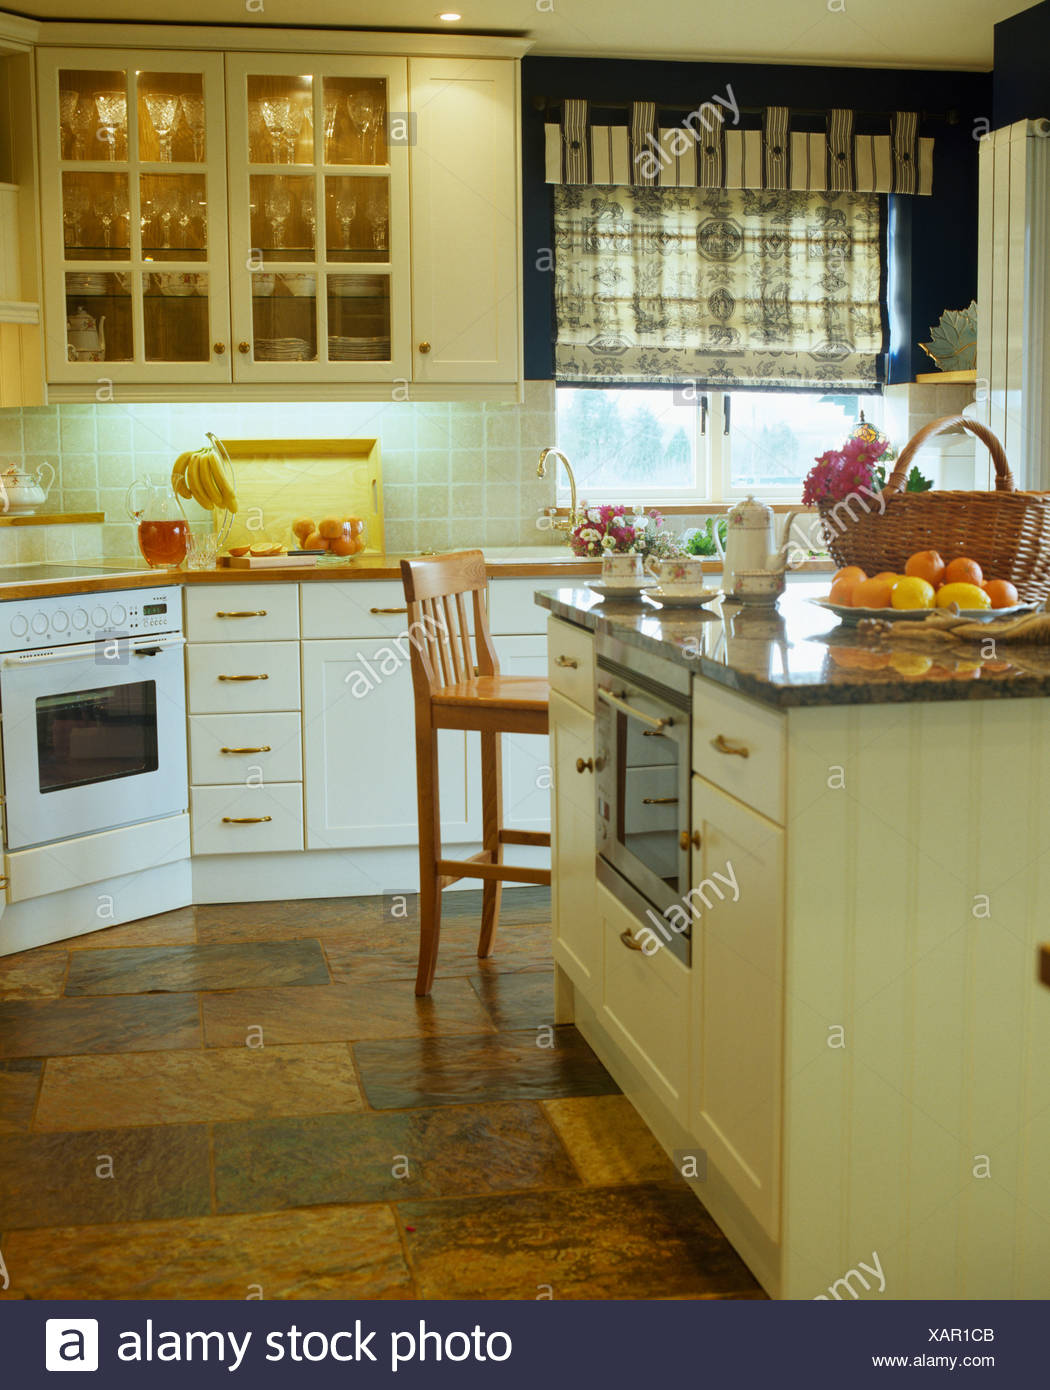 Island Unit And Slate Flooring In Country Kitchen With Patterned Blind On Window Beside Wall Cupboard Interior Lighting